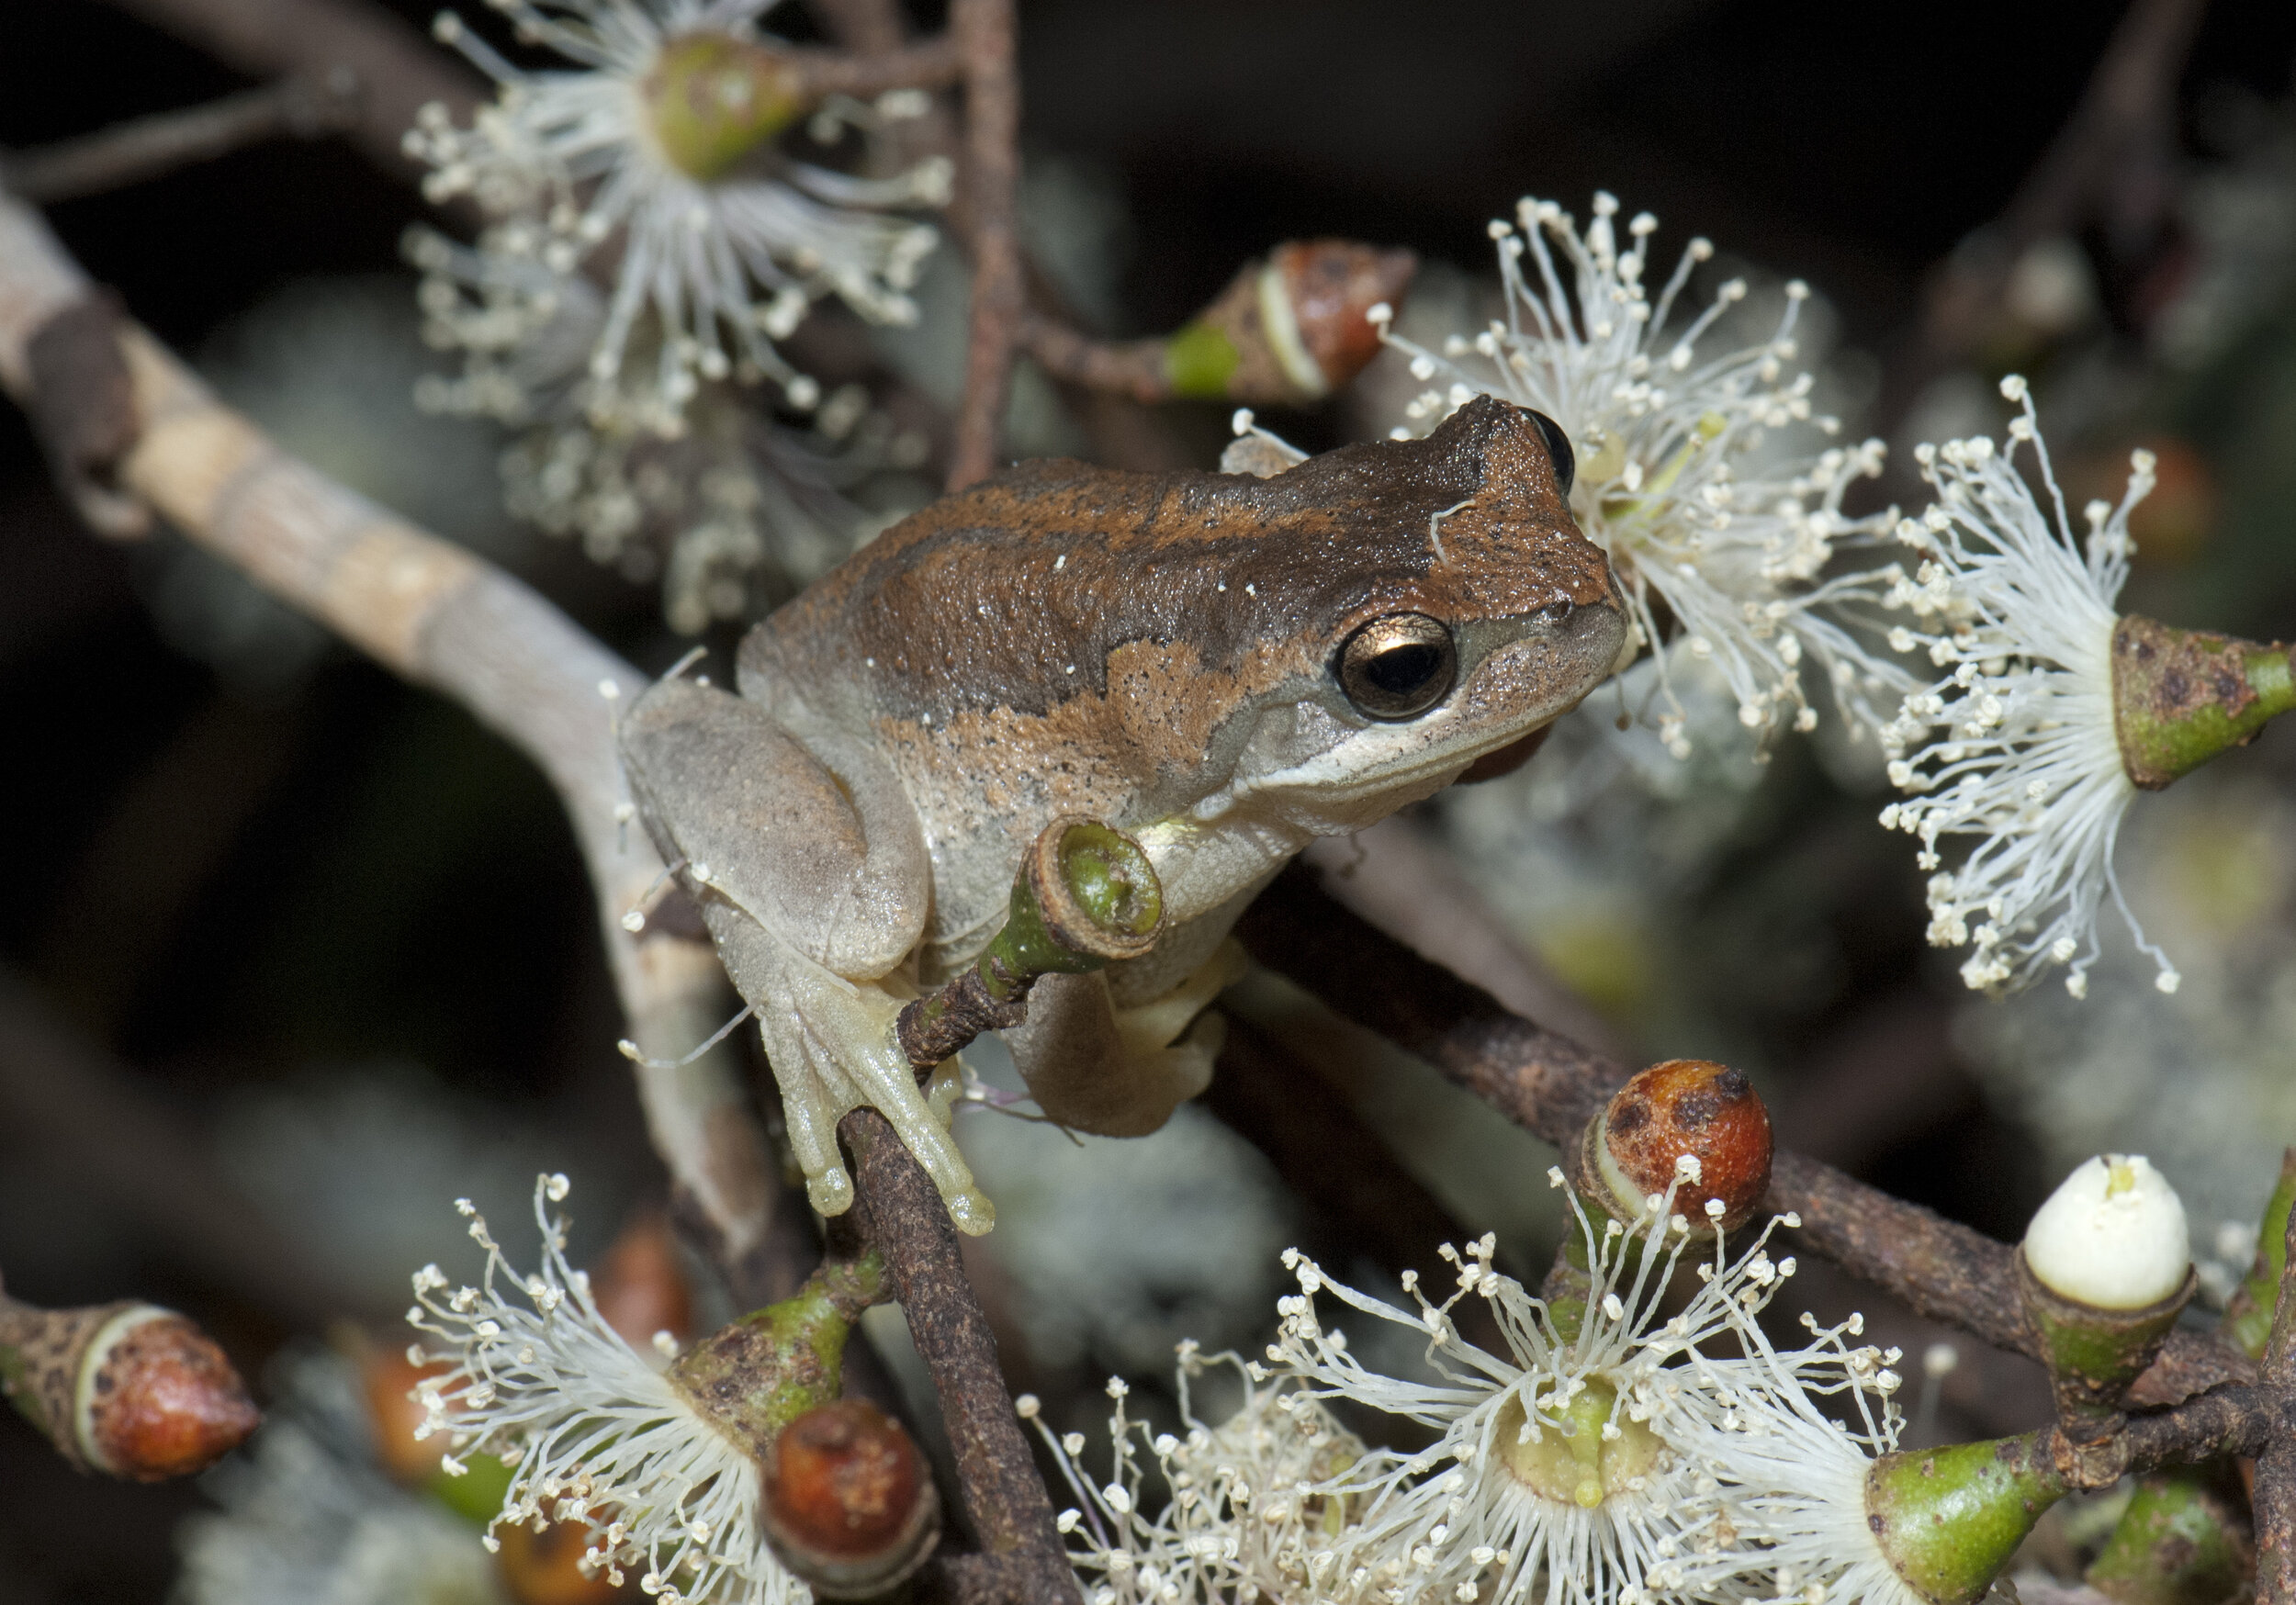 Frogs and Bushfire is one of the stories in the online Collections and Climate Change Project. Source: Museums Victoria. Photographer: David Paul.